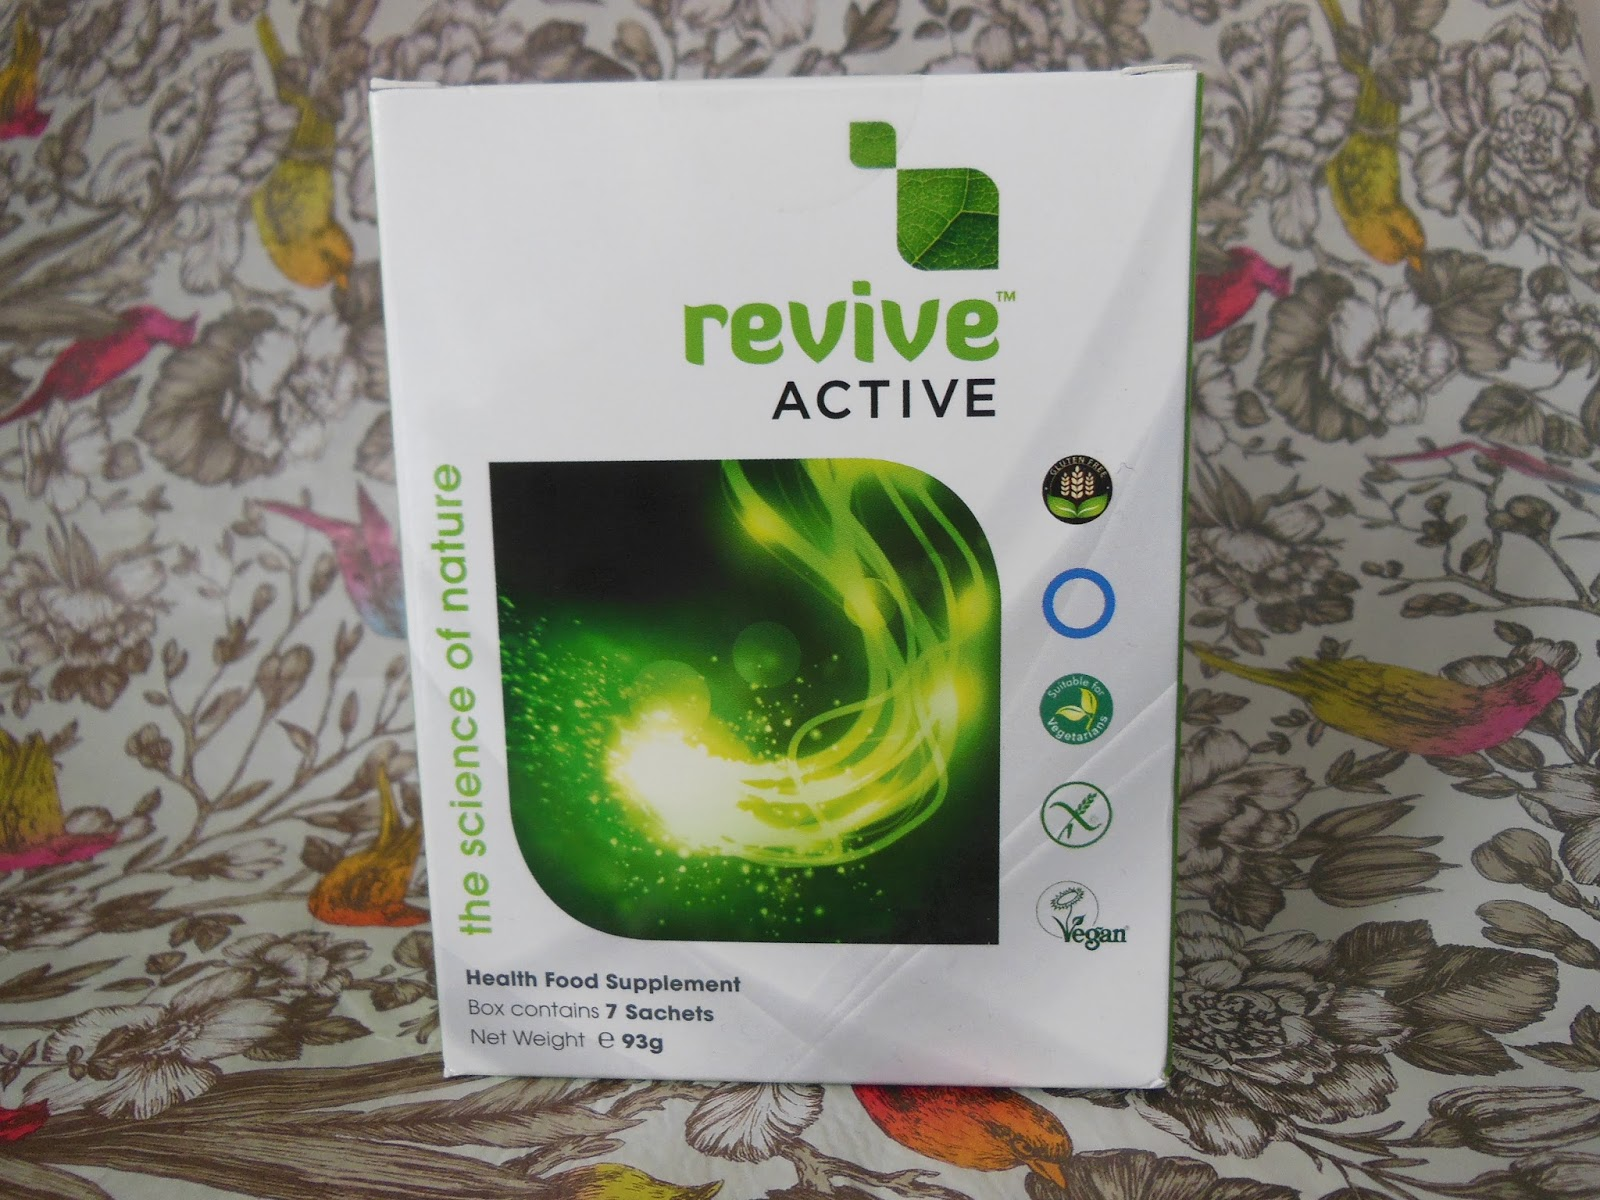 Revive Active food supplement box